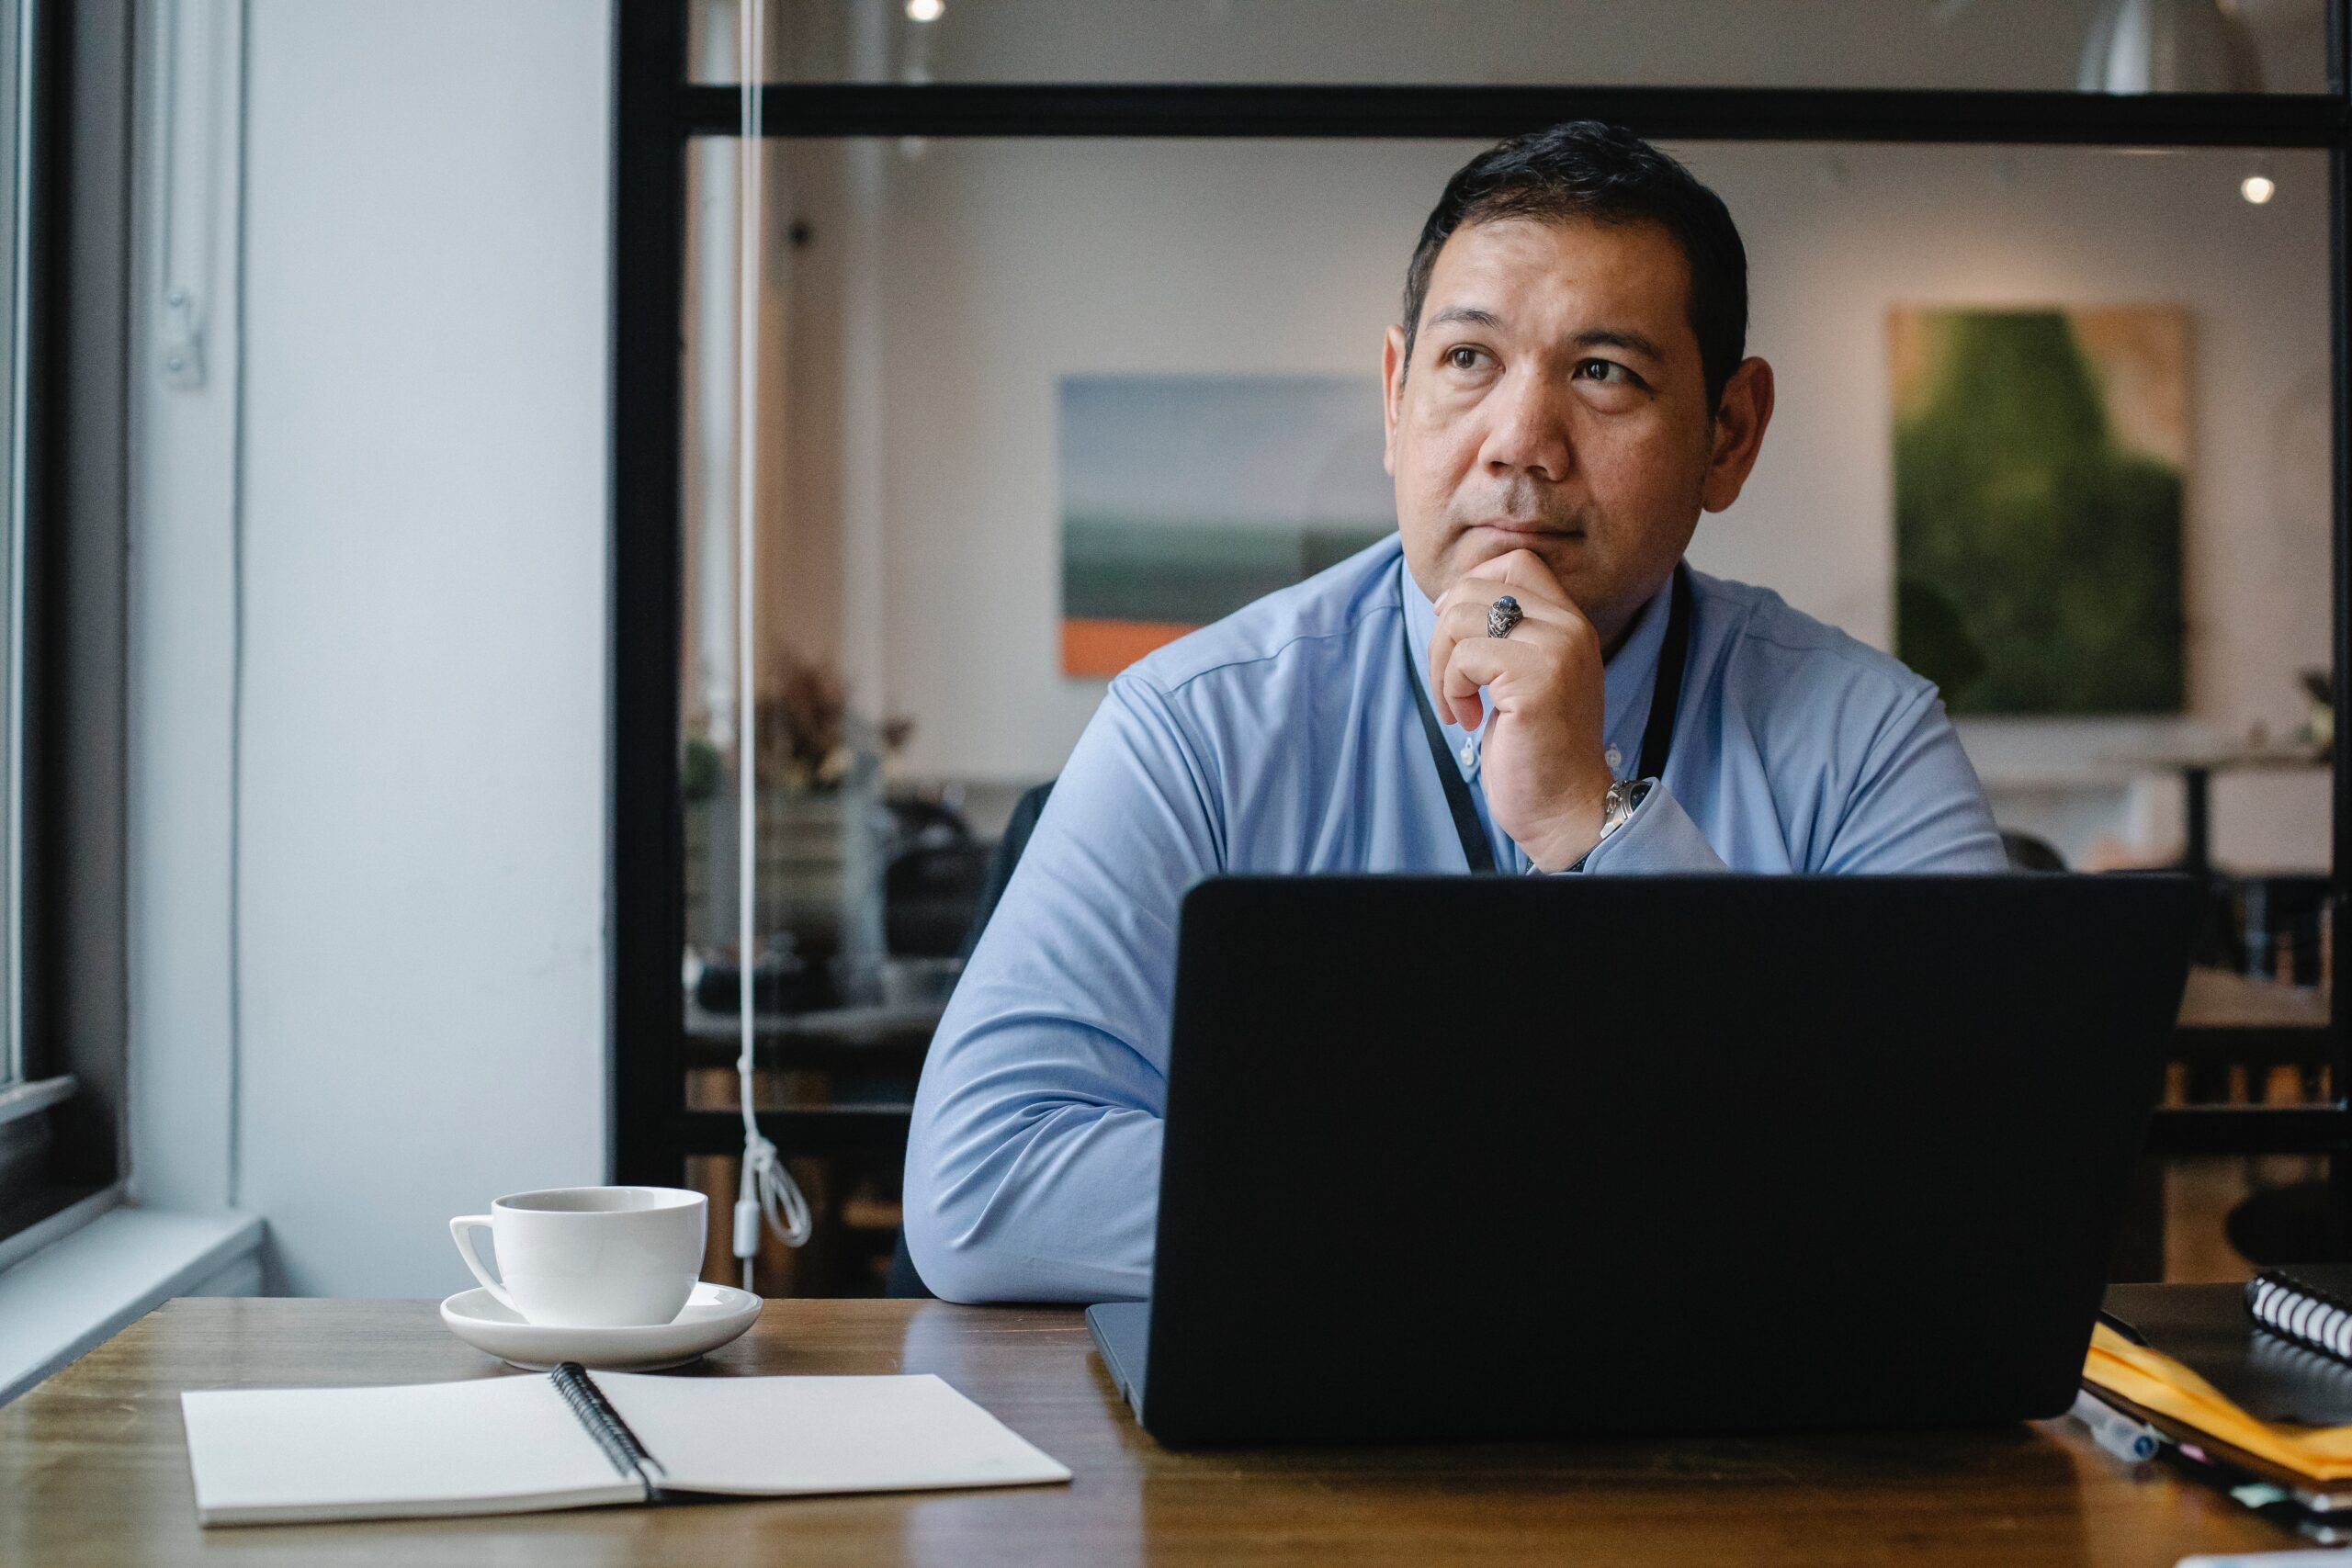 man sitting at laptop looking pensive